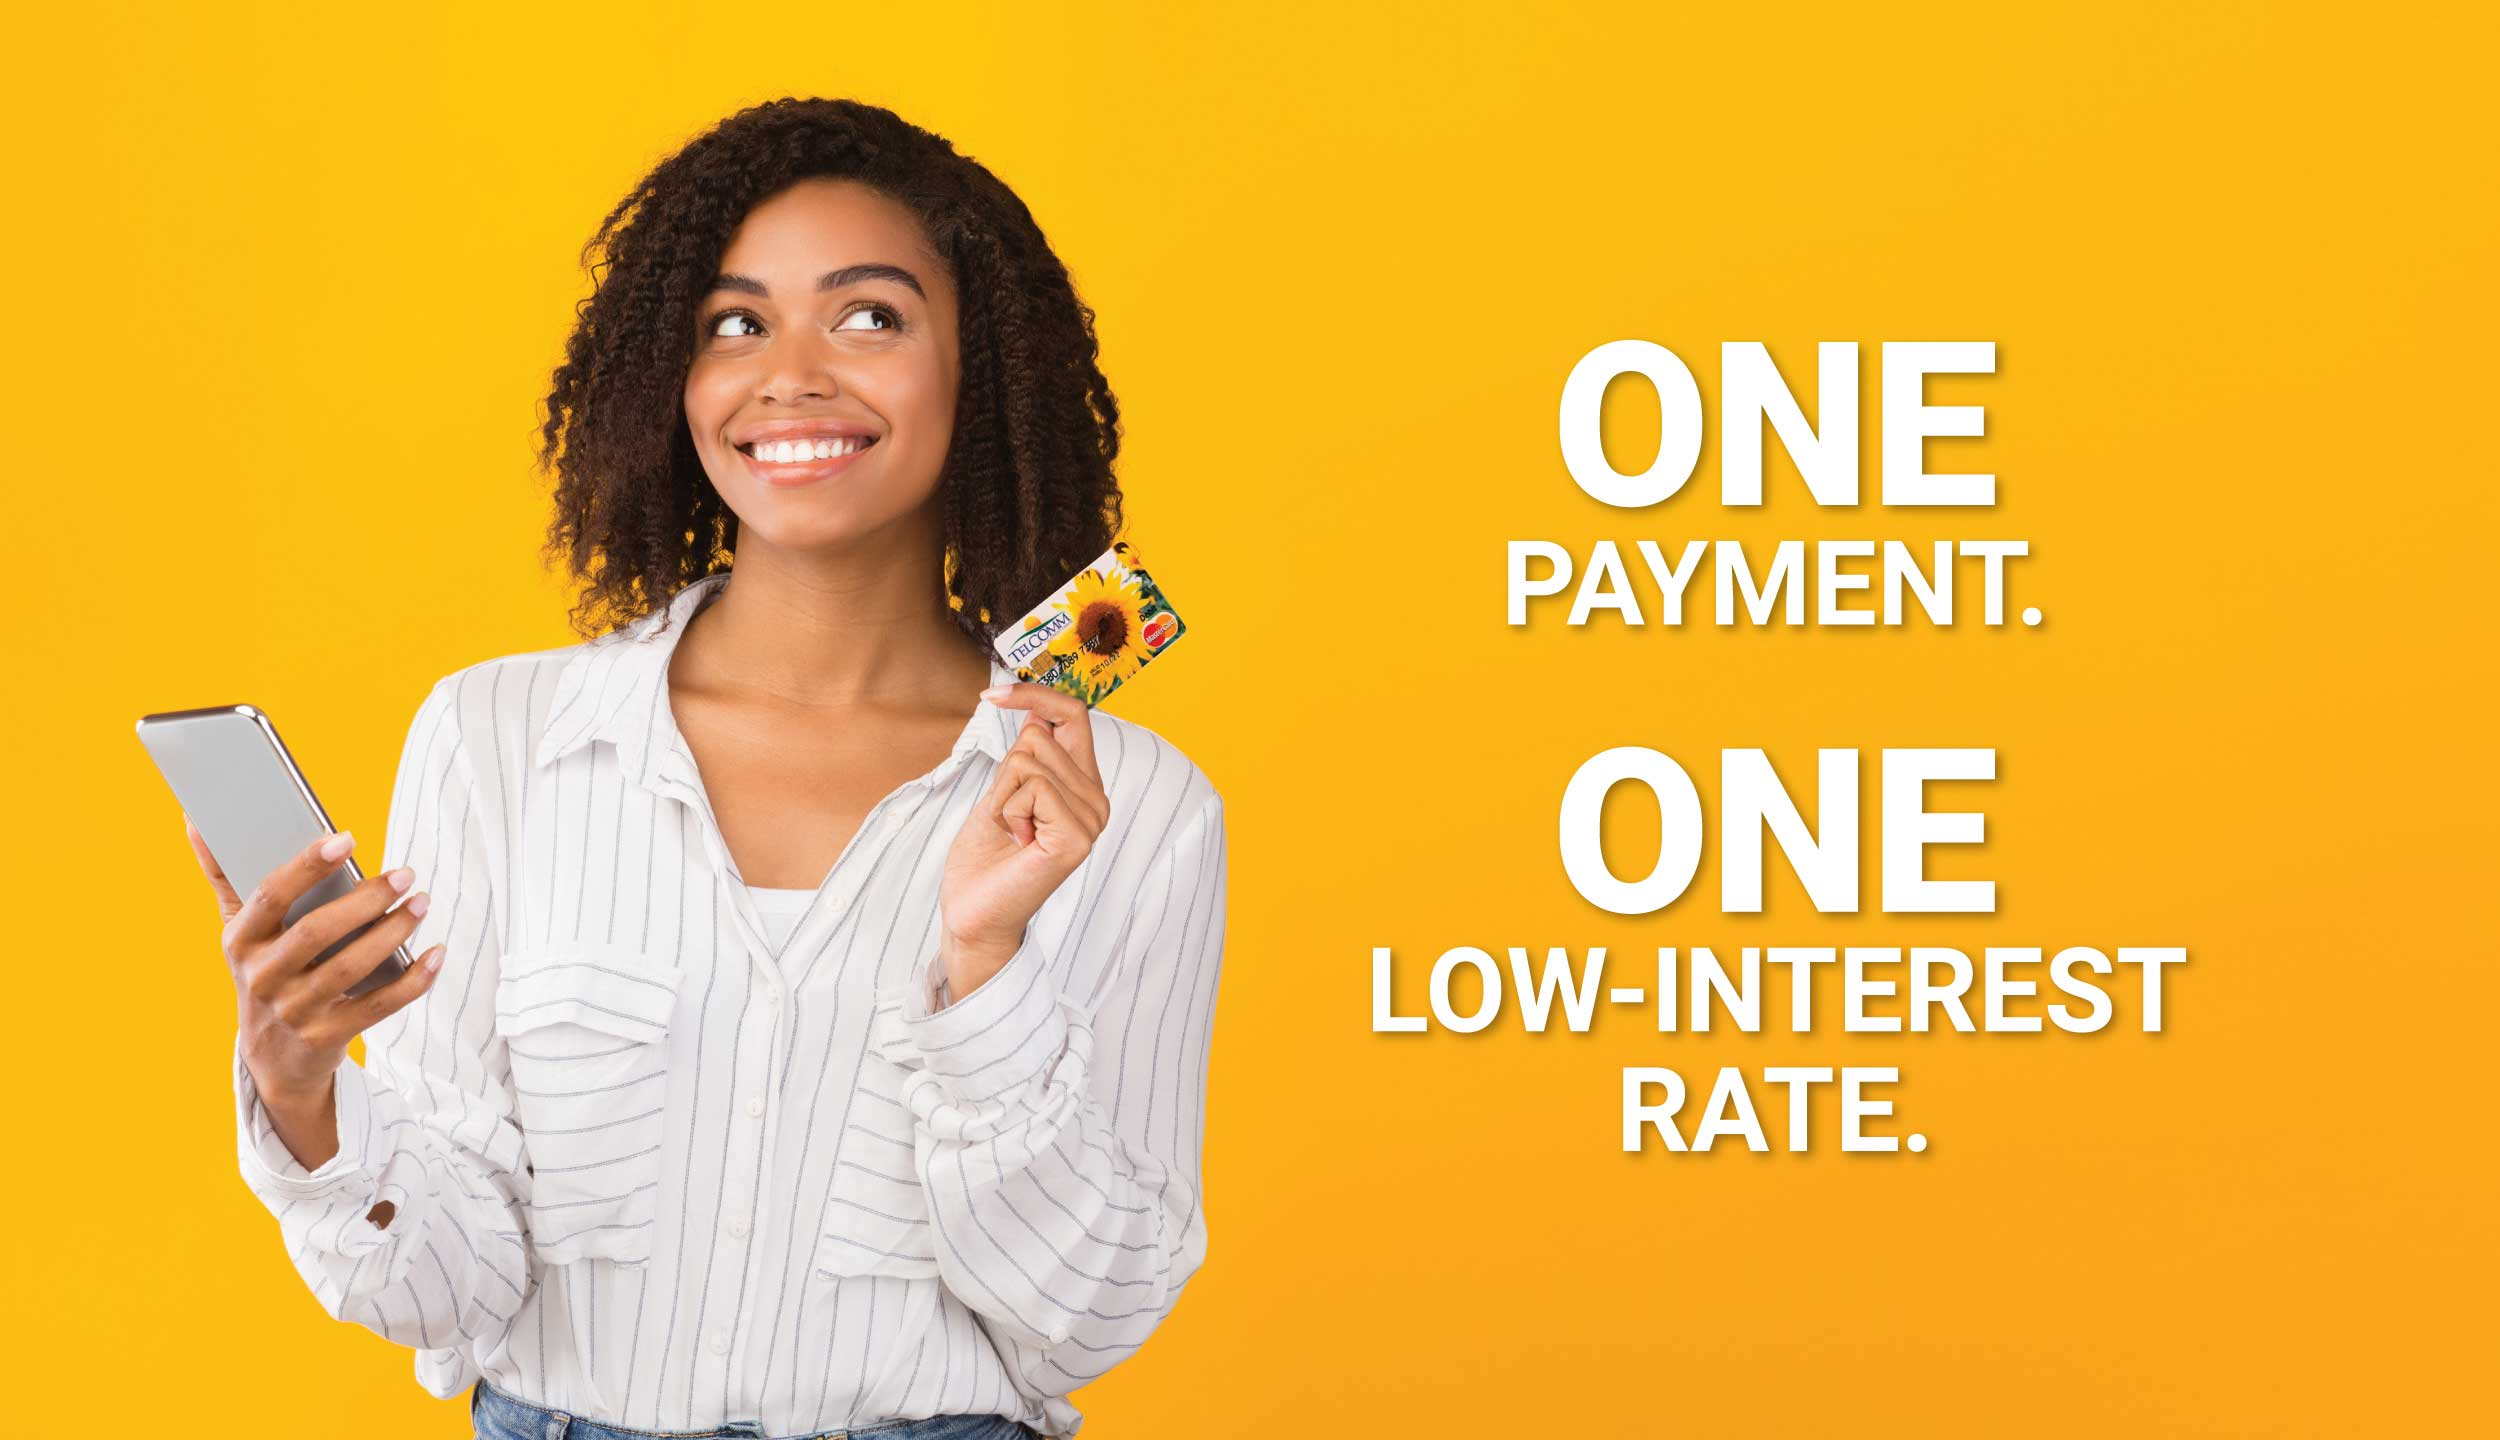 One payment. One low-interest rate.